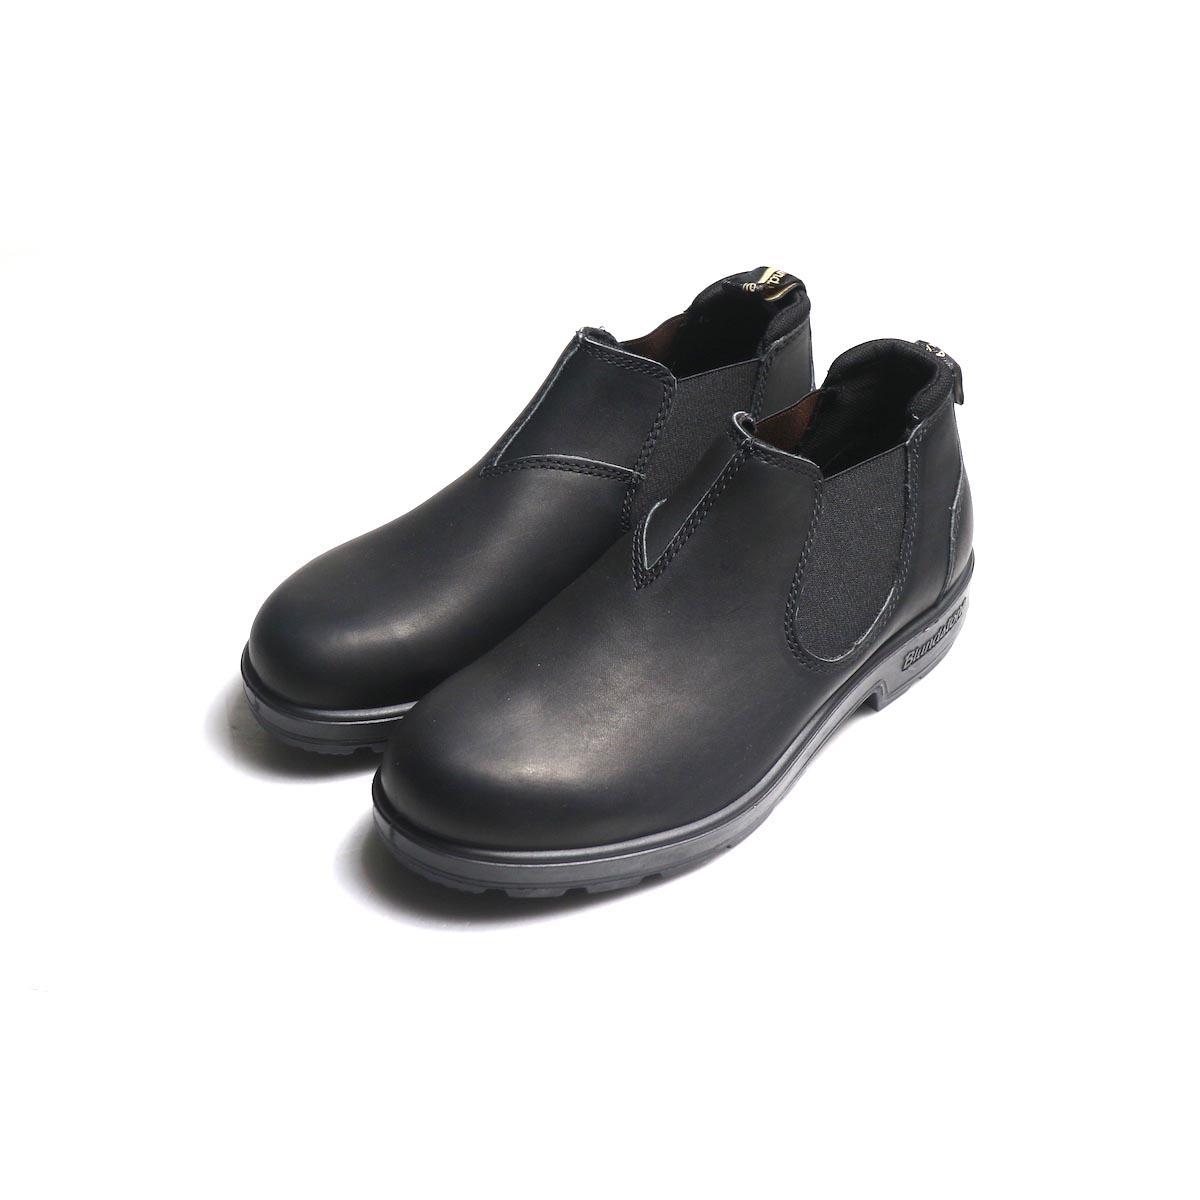 BLUNDSTONE / Low Cut Side Gore #1611 (Black)